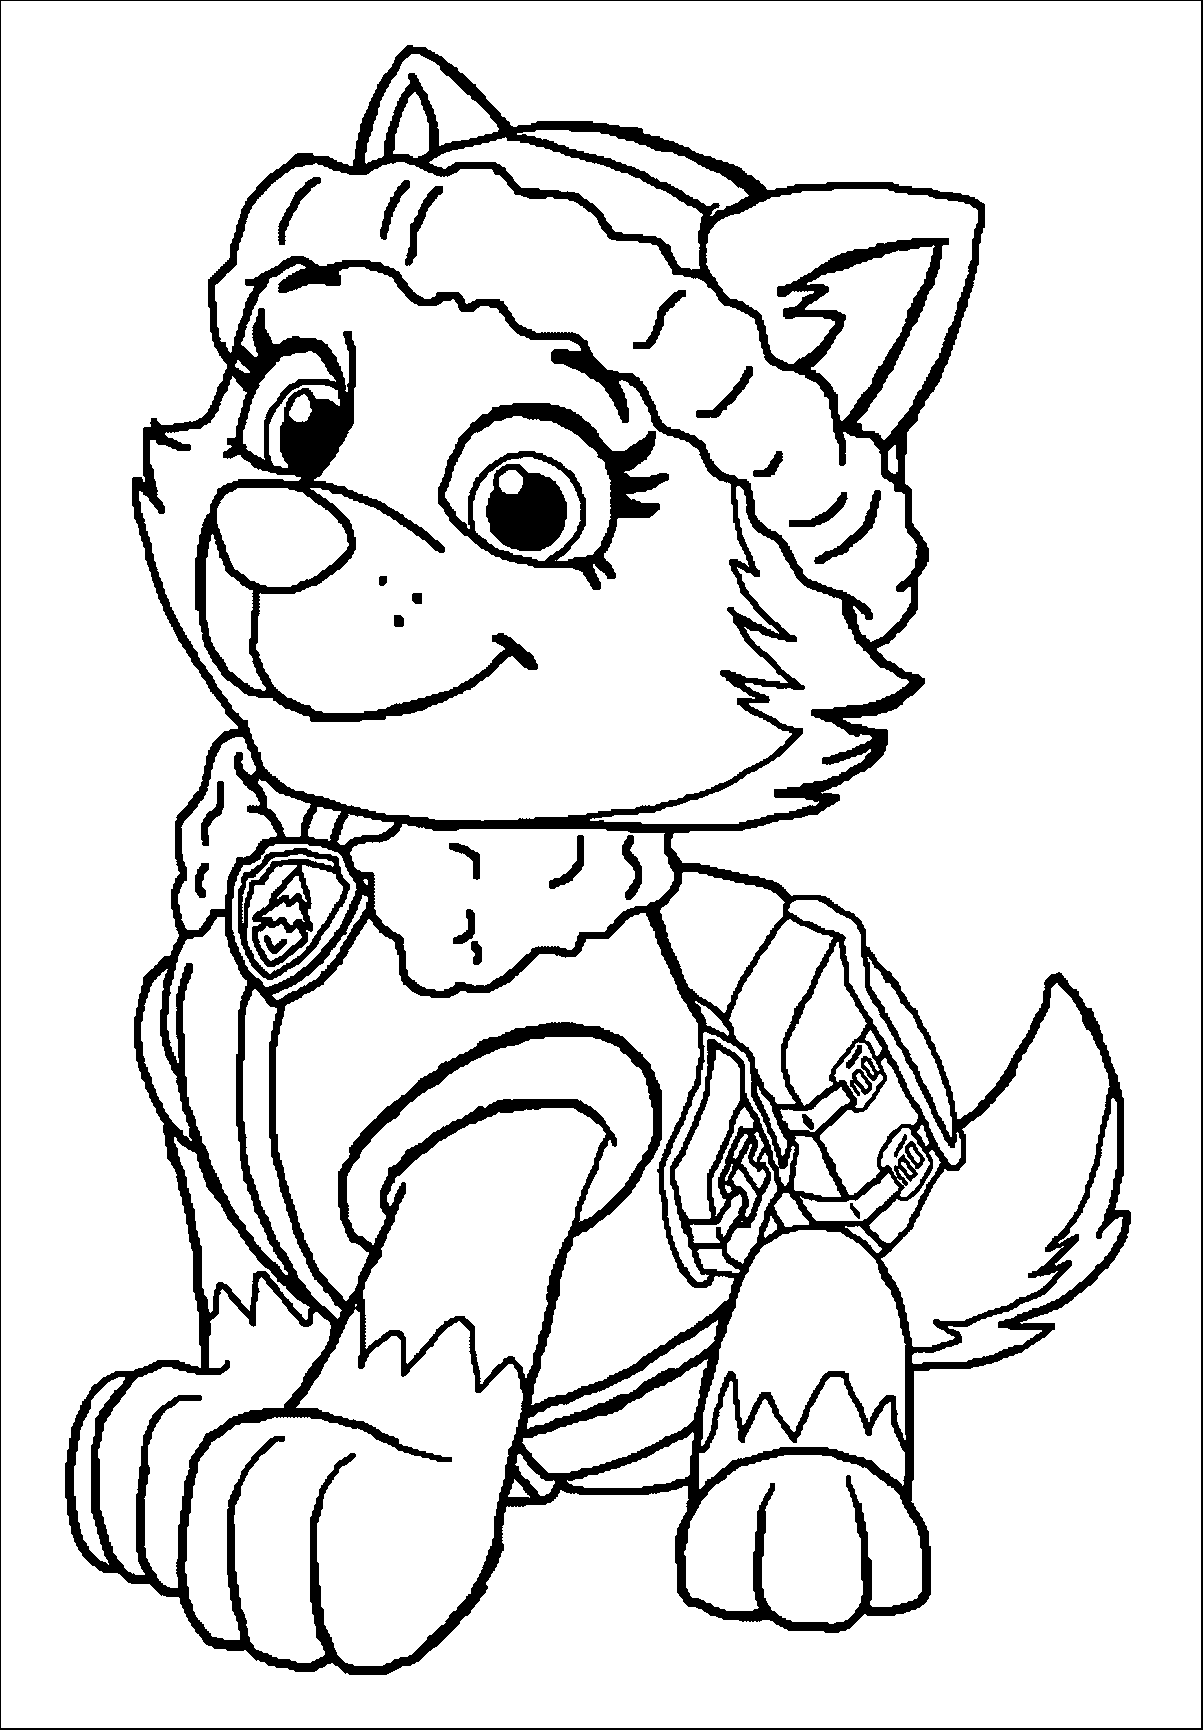 paw patrol for coloring chase paw patrol coloring page at getdrawings free download patrol coloring for paw